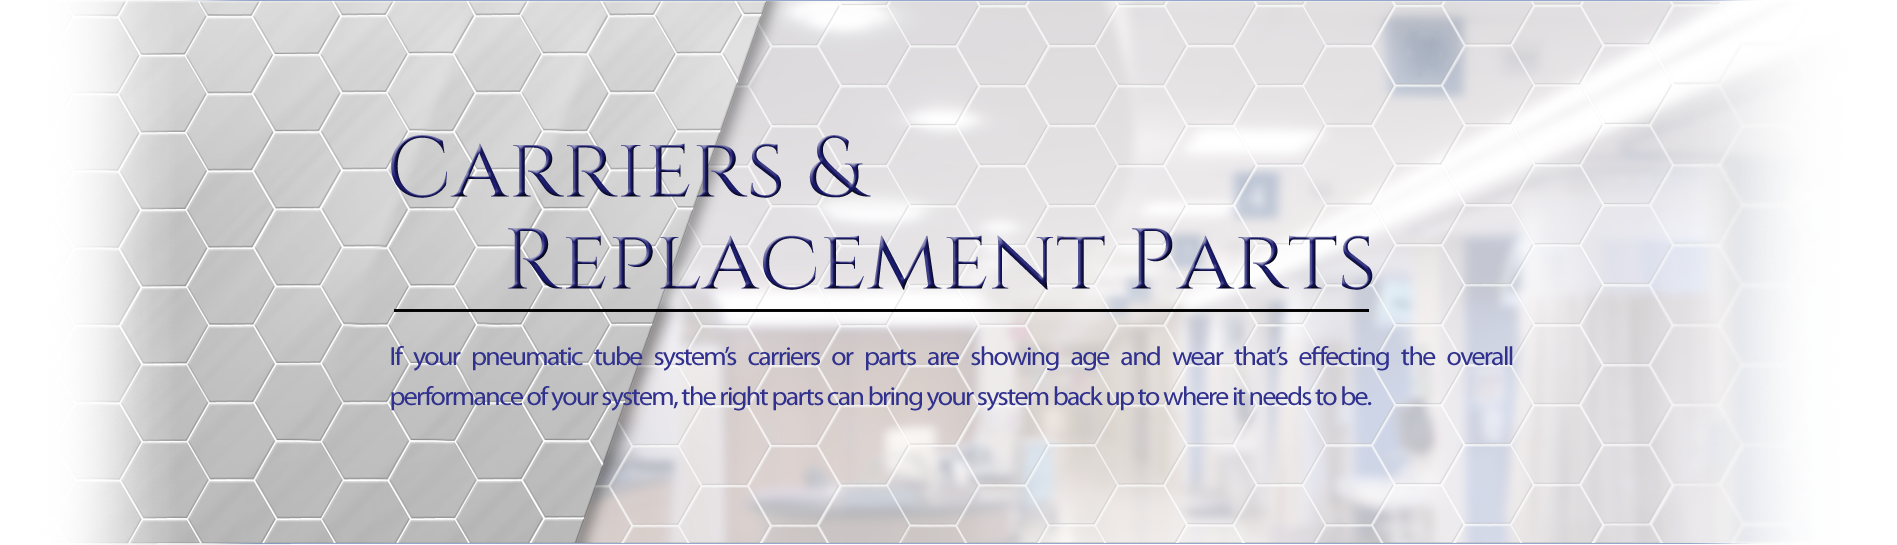 If your pneumatic tube system's carriers or parts are showing age and wear that's effecting the overall performance of your tube system, the right parts can bring your system back up to where it needs to be.